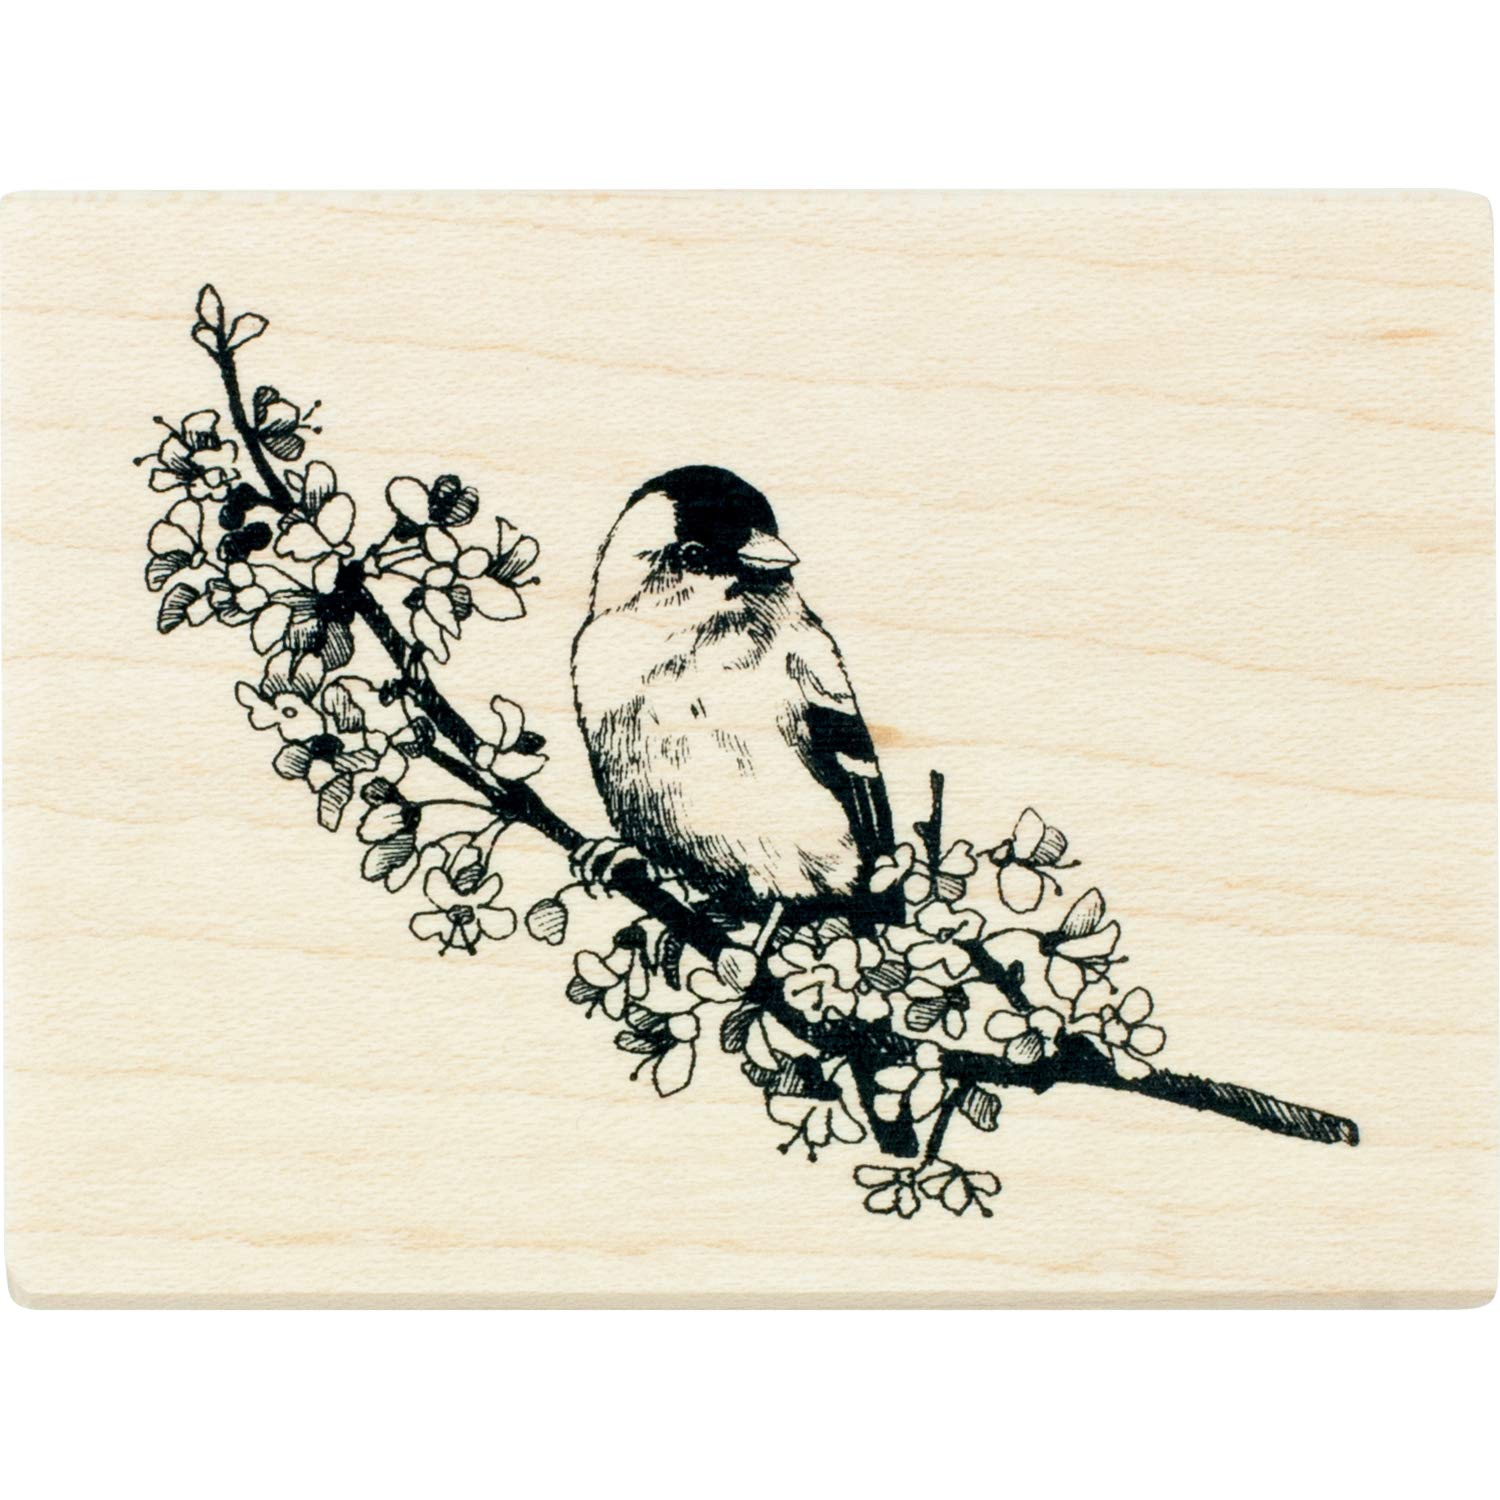 Inkadinkado Finch on a Branch Mounted Rubber Stamp for Card Making and Scrapbooking, 3'' x 2.25'' x 1''